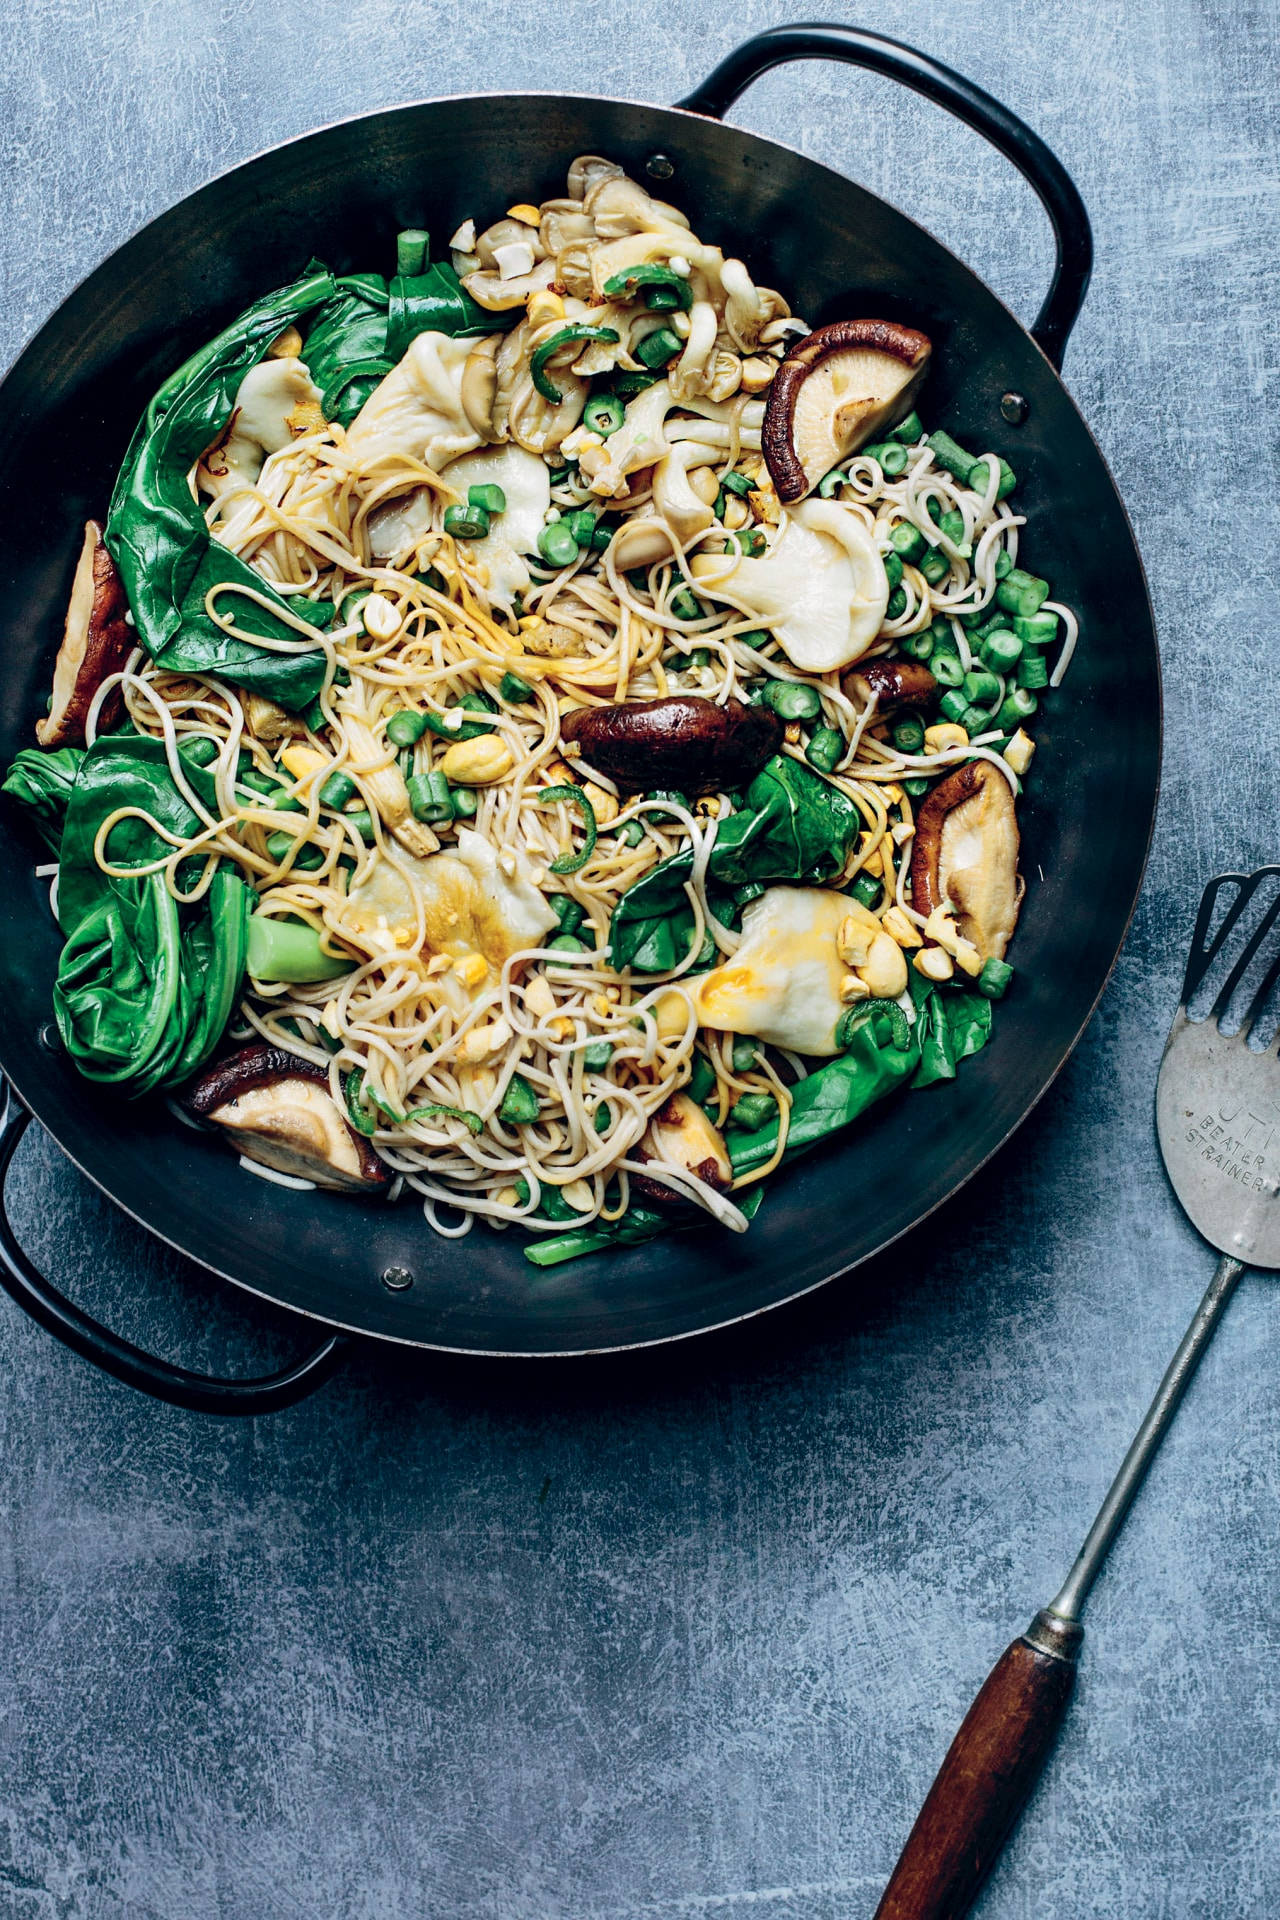 Recipe: the mushroom stir fry you can make on any given weeknight